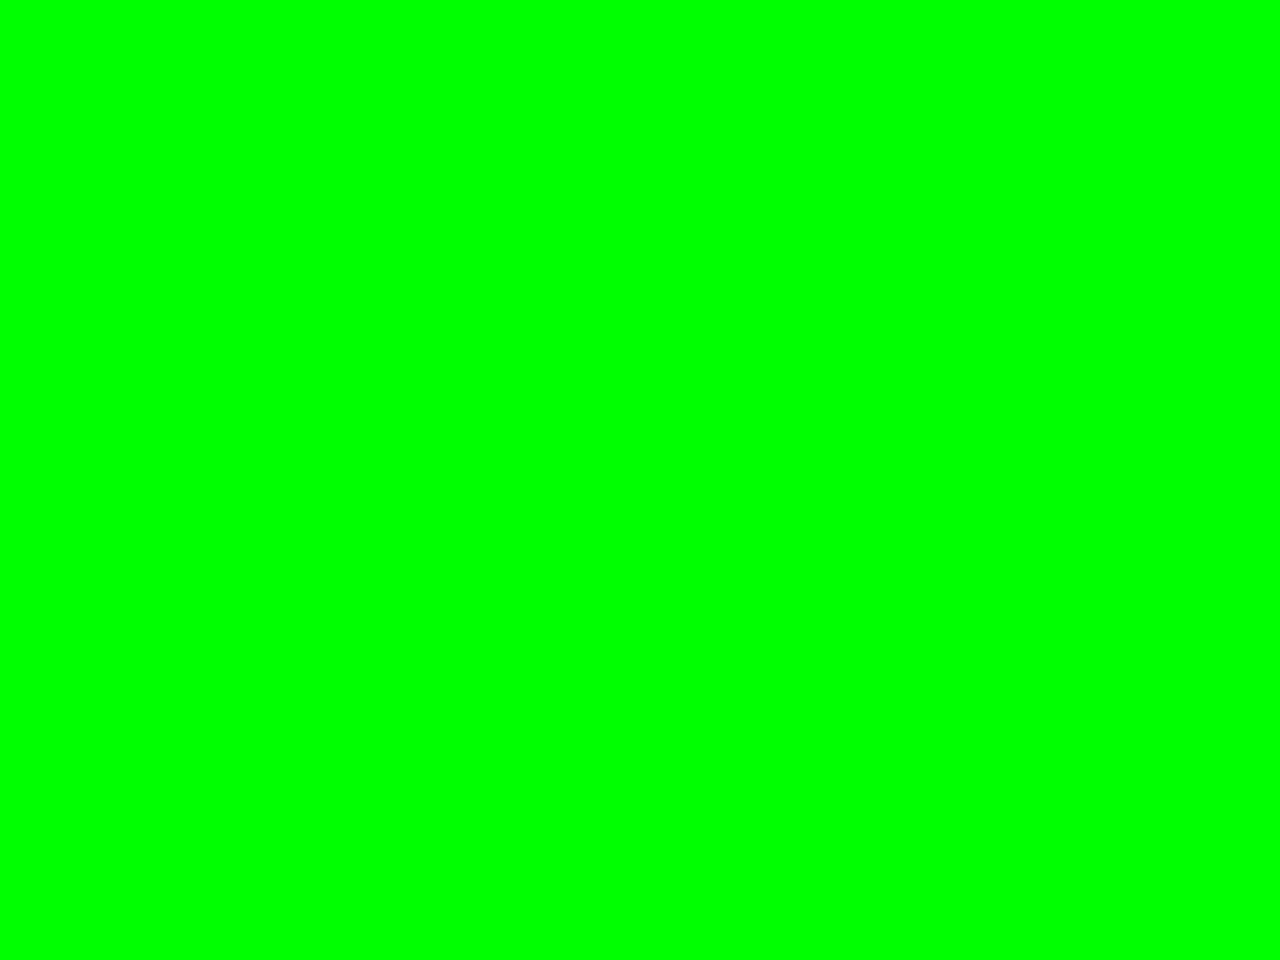 1280x960 Green X11 Gui Green Solid Color Background